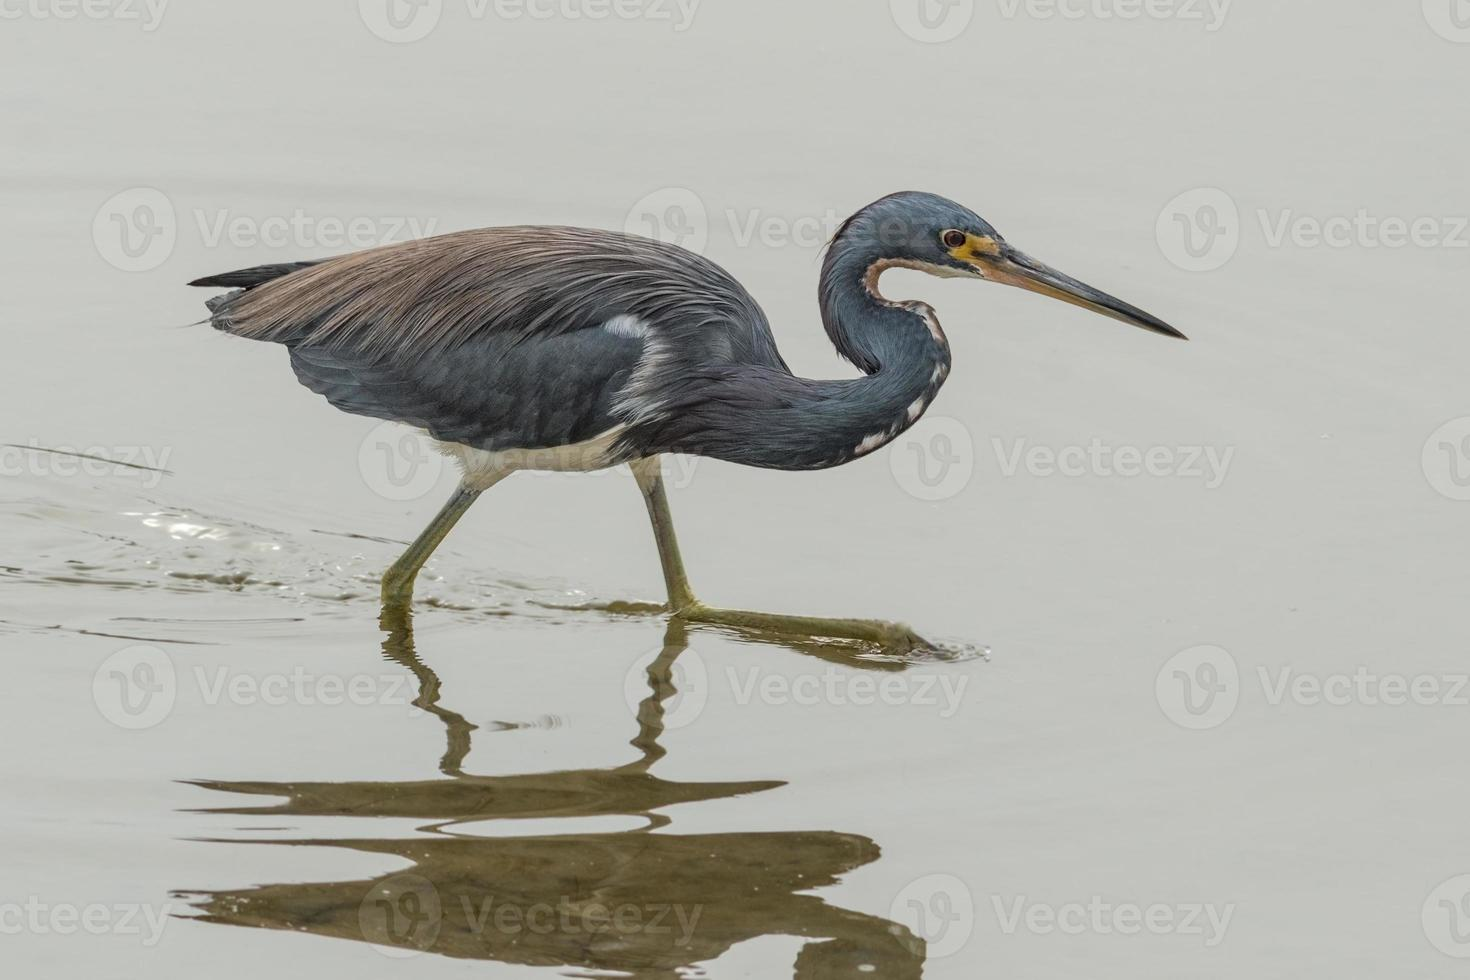 Tricolor heron on the hunt photo